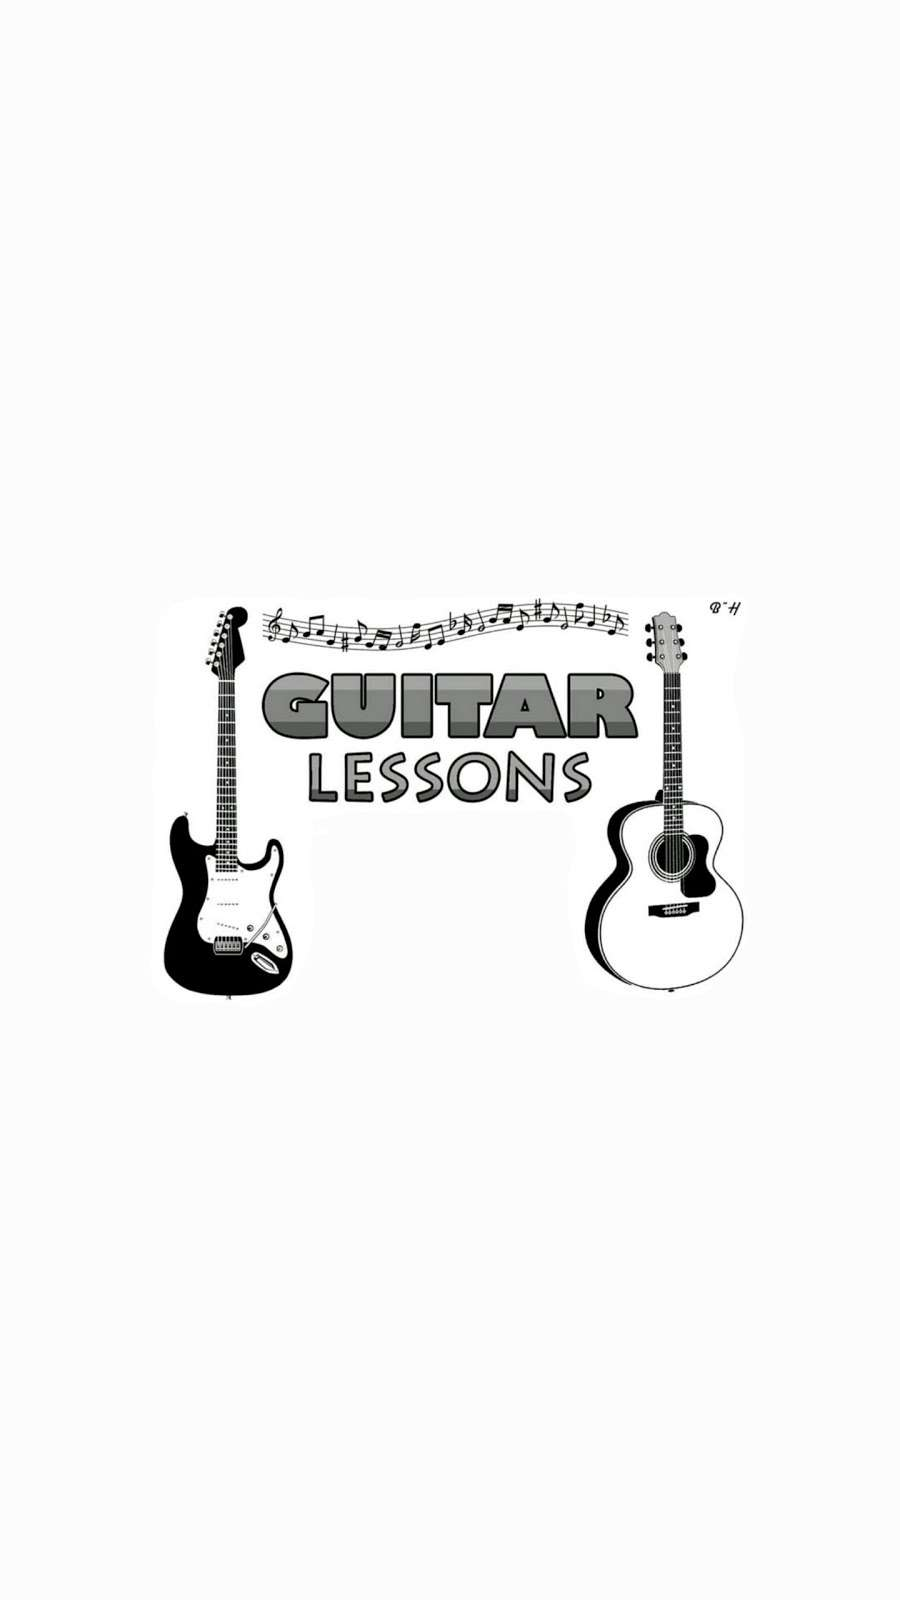 Guitar And Piano MUSIC LESSONS - school  | Photo 1 of 1 | Address: 1801 Ocean Ave, Brooklyn, NY 11230, USA | Phone: (917) 971-2348